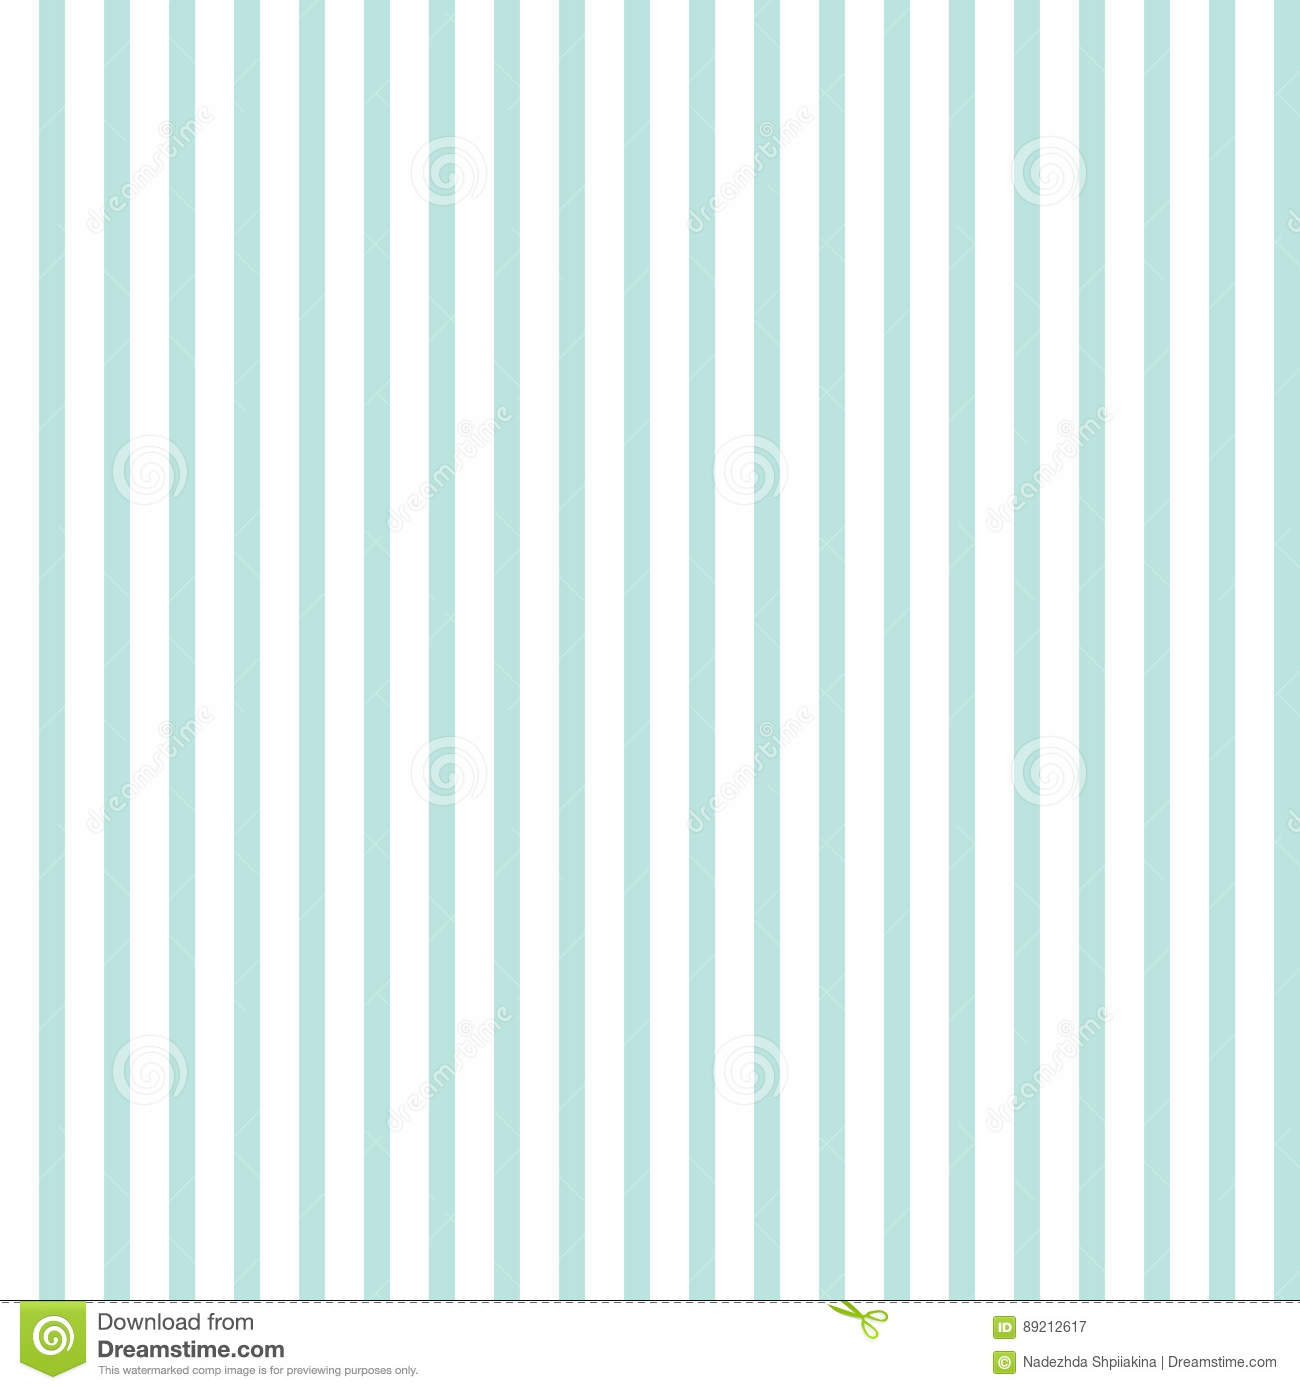 Vector Striped Pattern Light Background For Elegant Design Tiling Seamless Ornament With Vertical Lines Stock Vector Illustration Of Seamless Paper 89212617